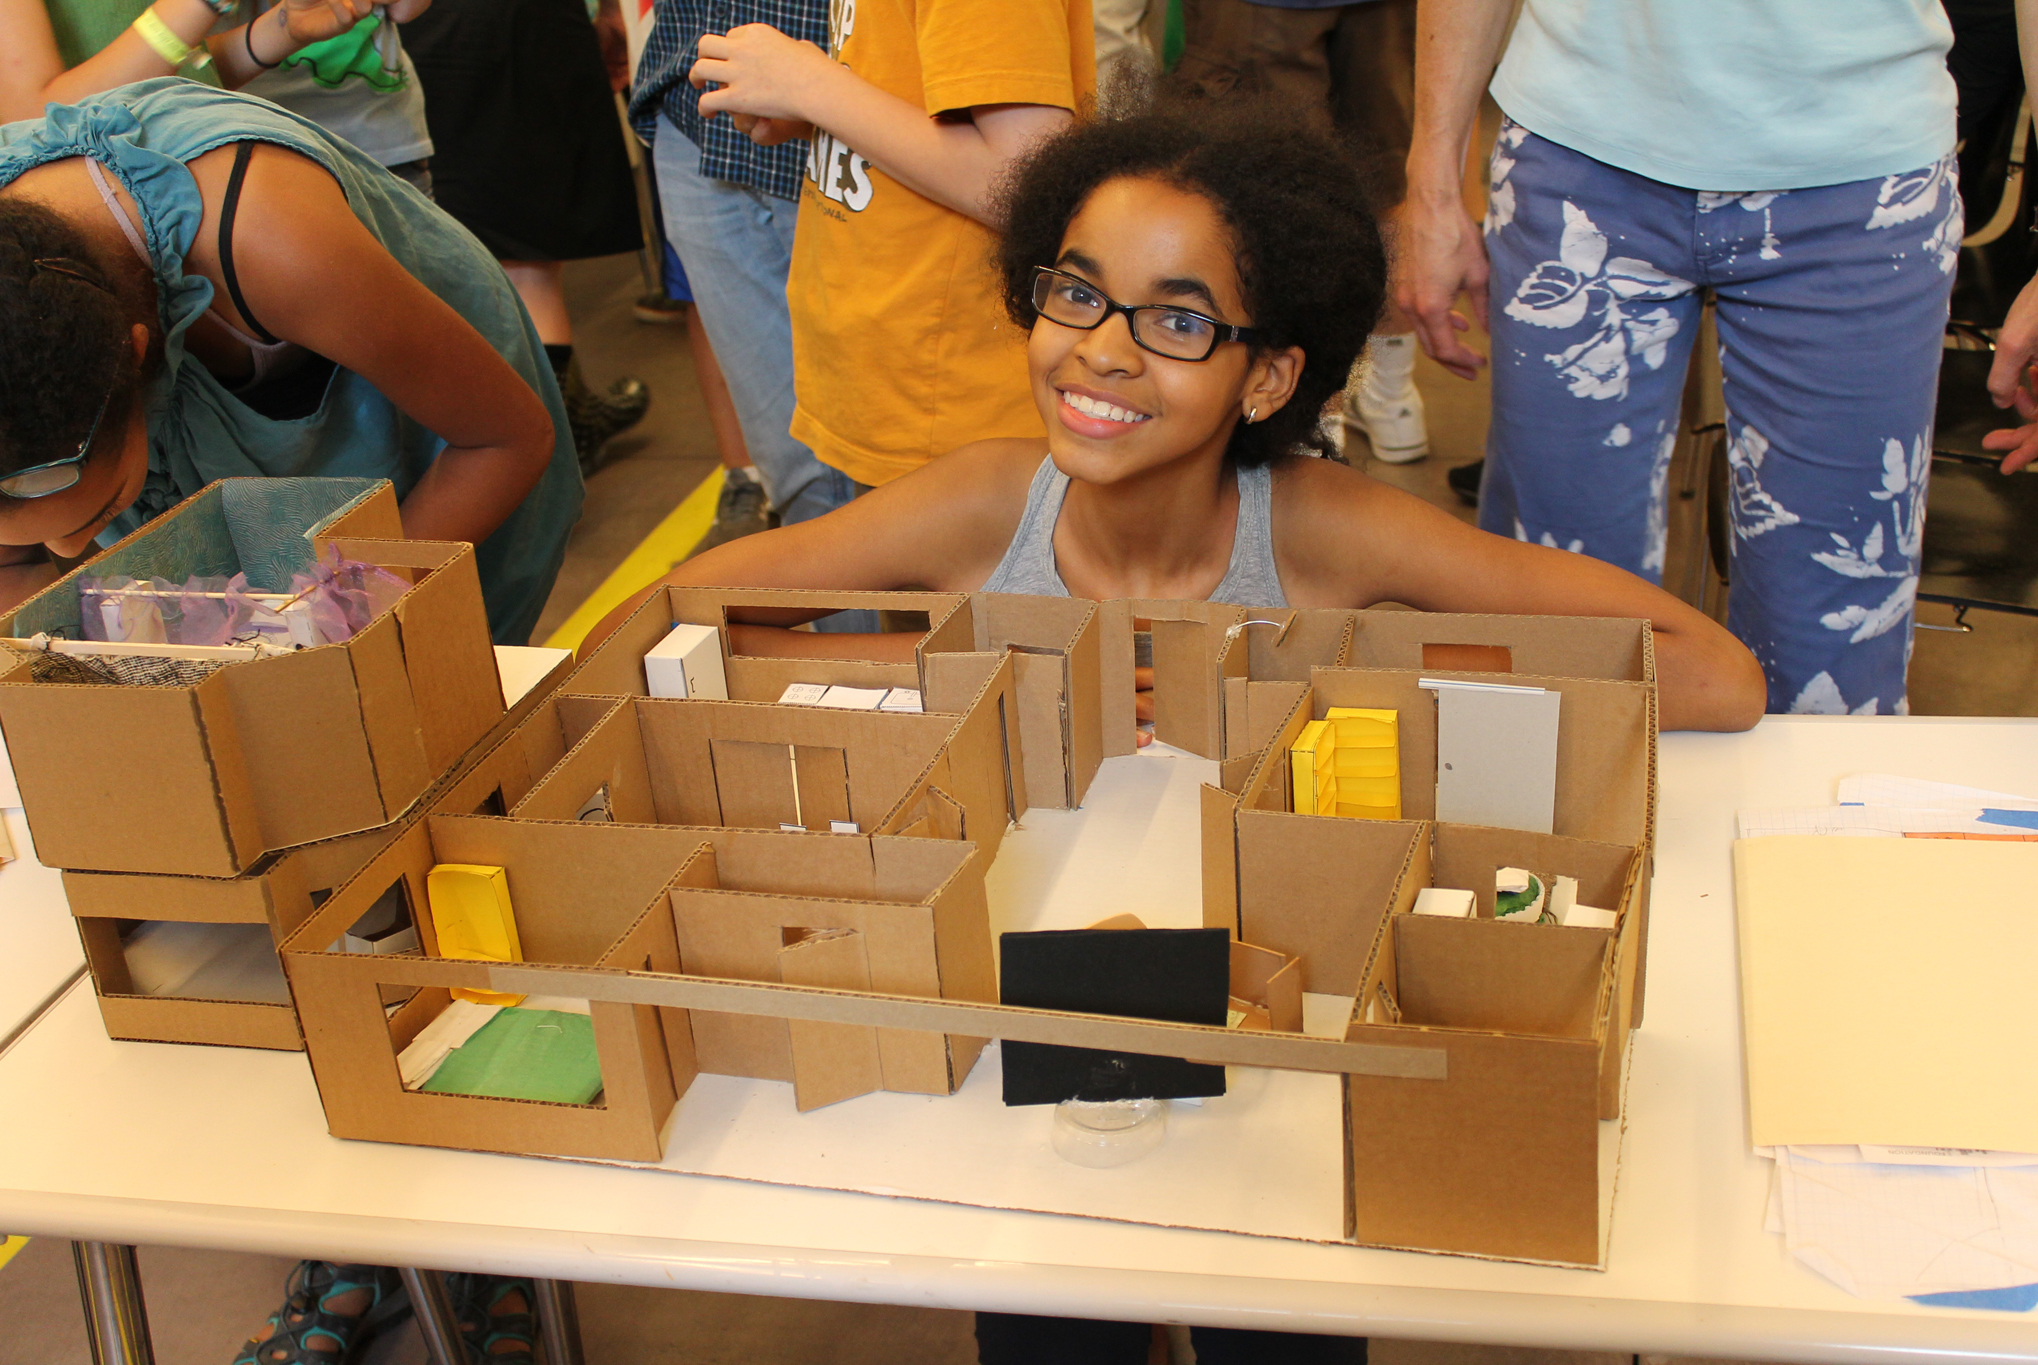 architecture summer center camp camps foundation teaching science kid museum things education arch activities architects modern students elementary program